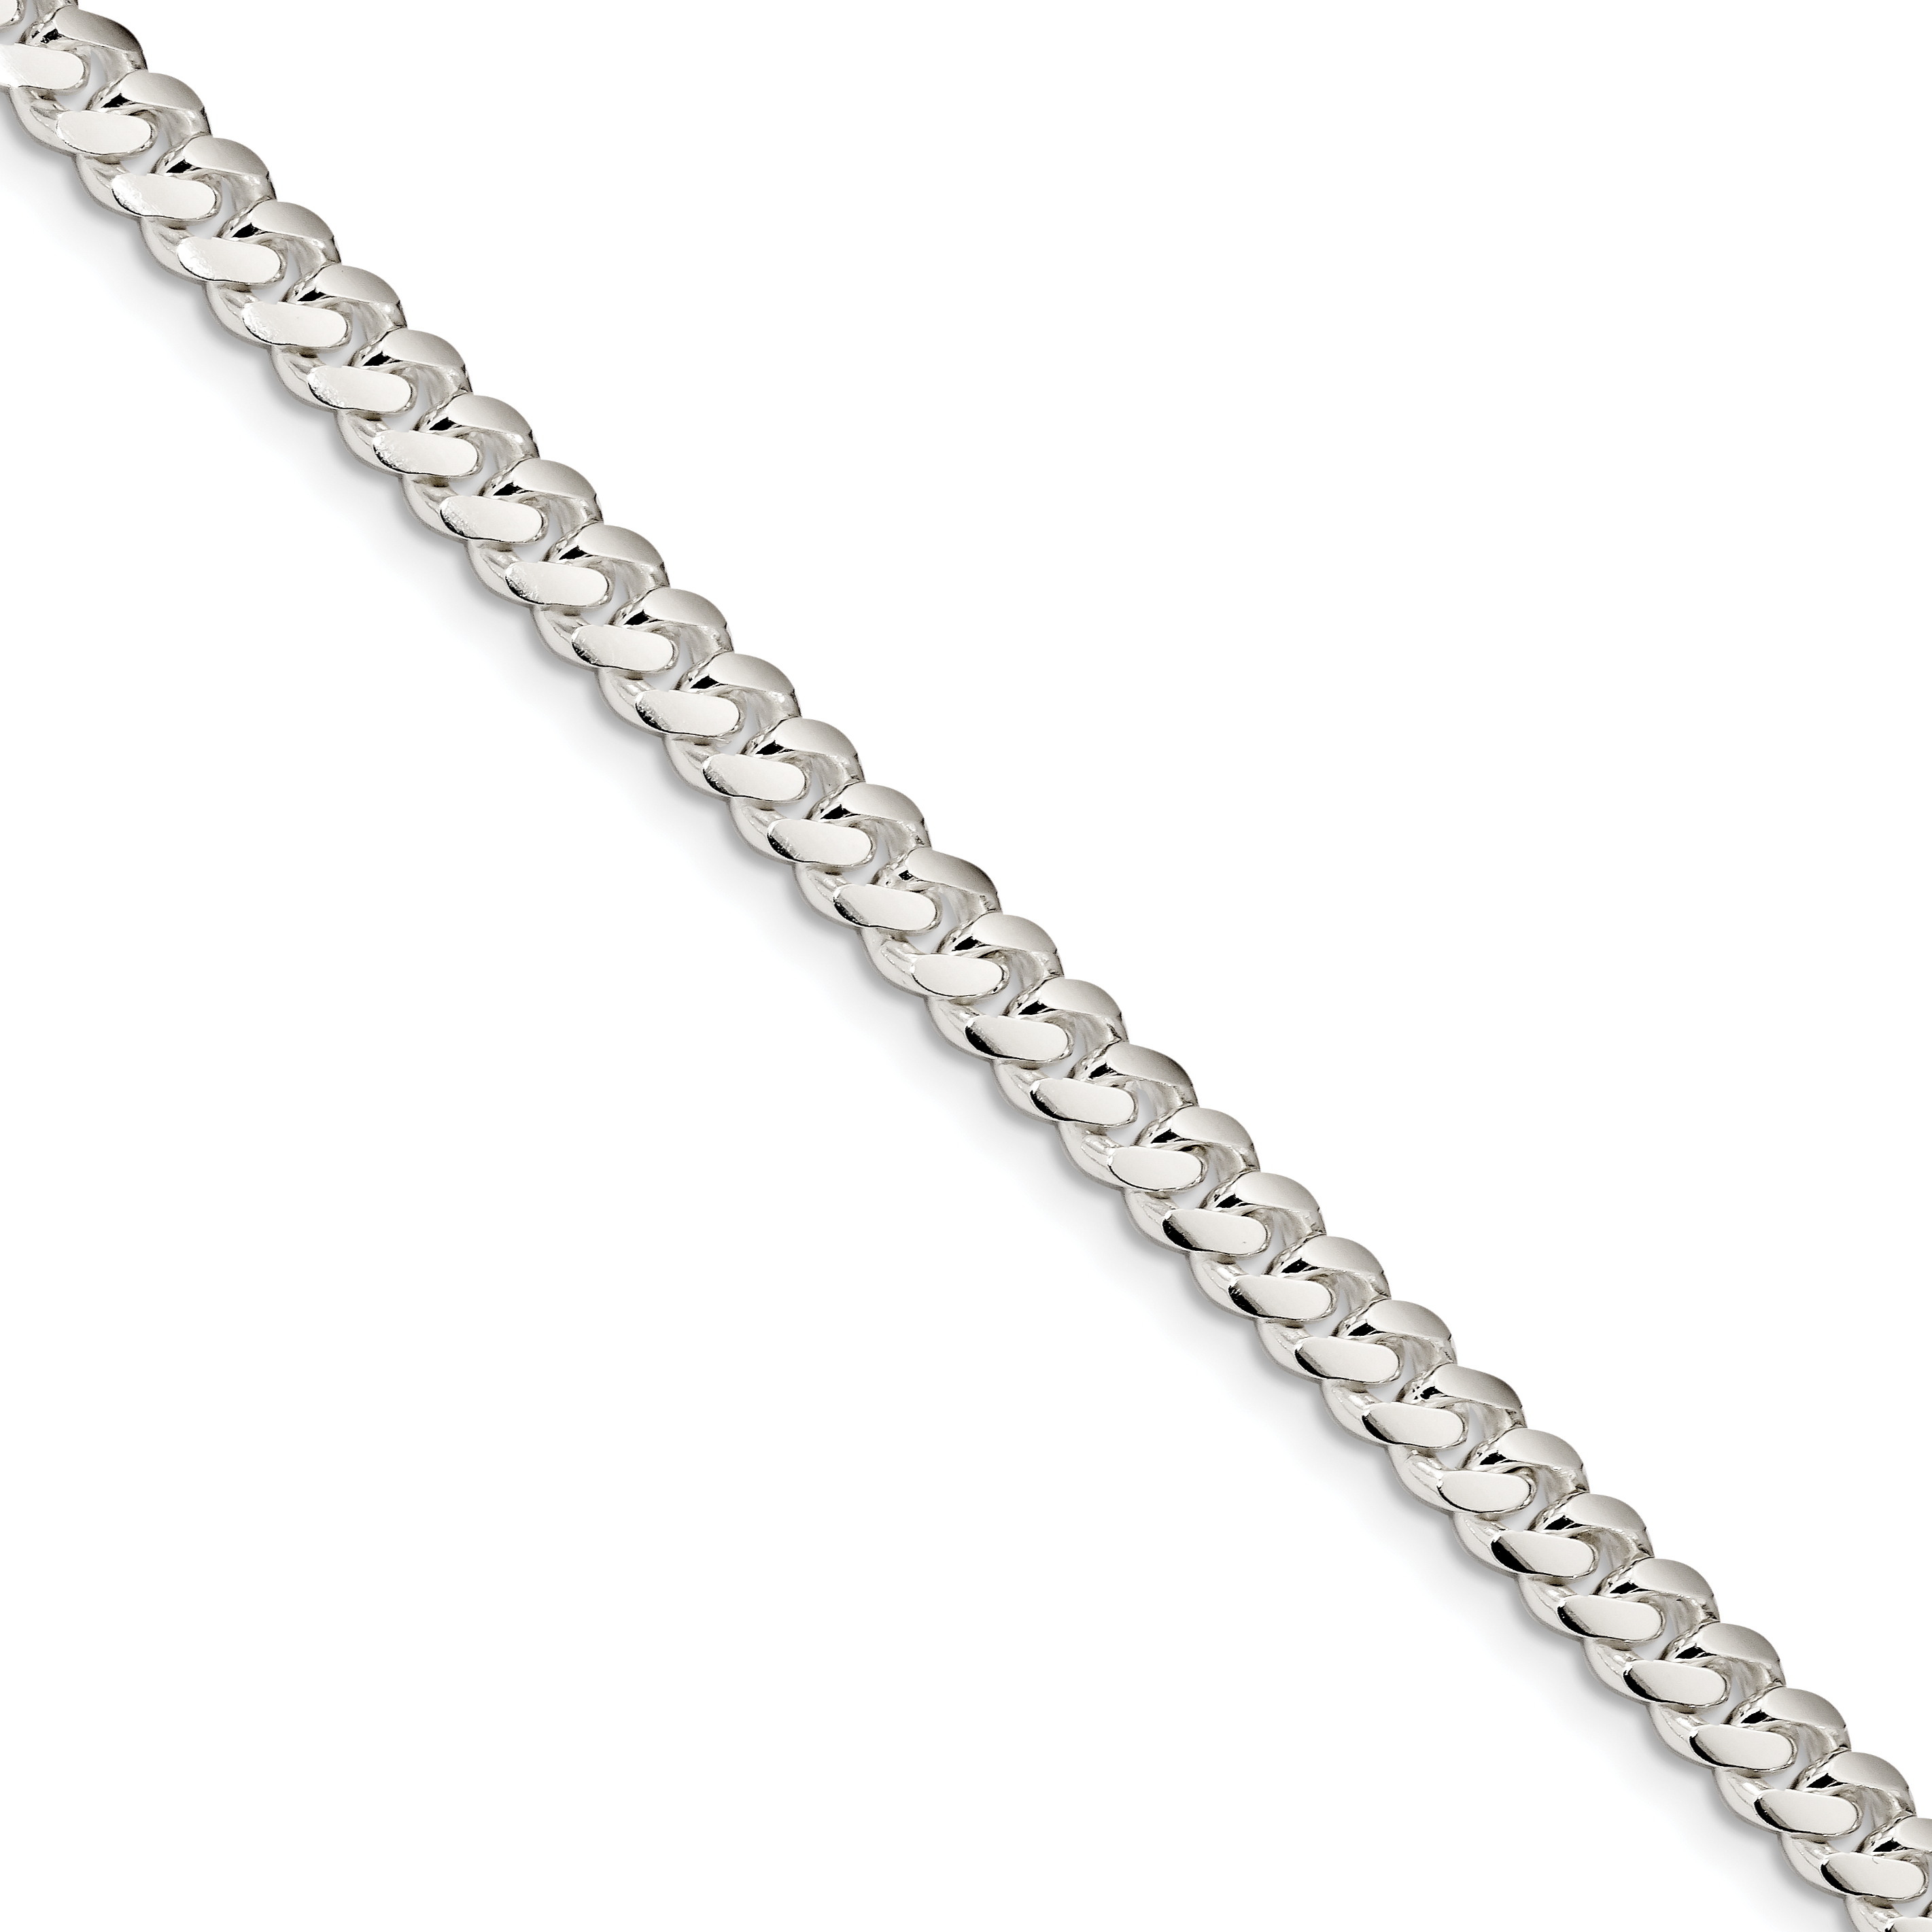 Sterling Silver 6.4mm Polished Domed Curb Chain | Weight: 17.02 grams, Length: 7mm, Width: 6.4mm